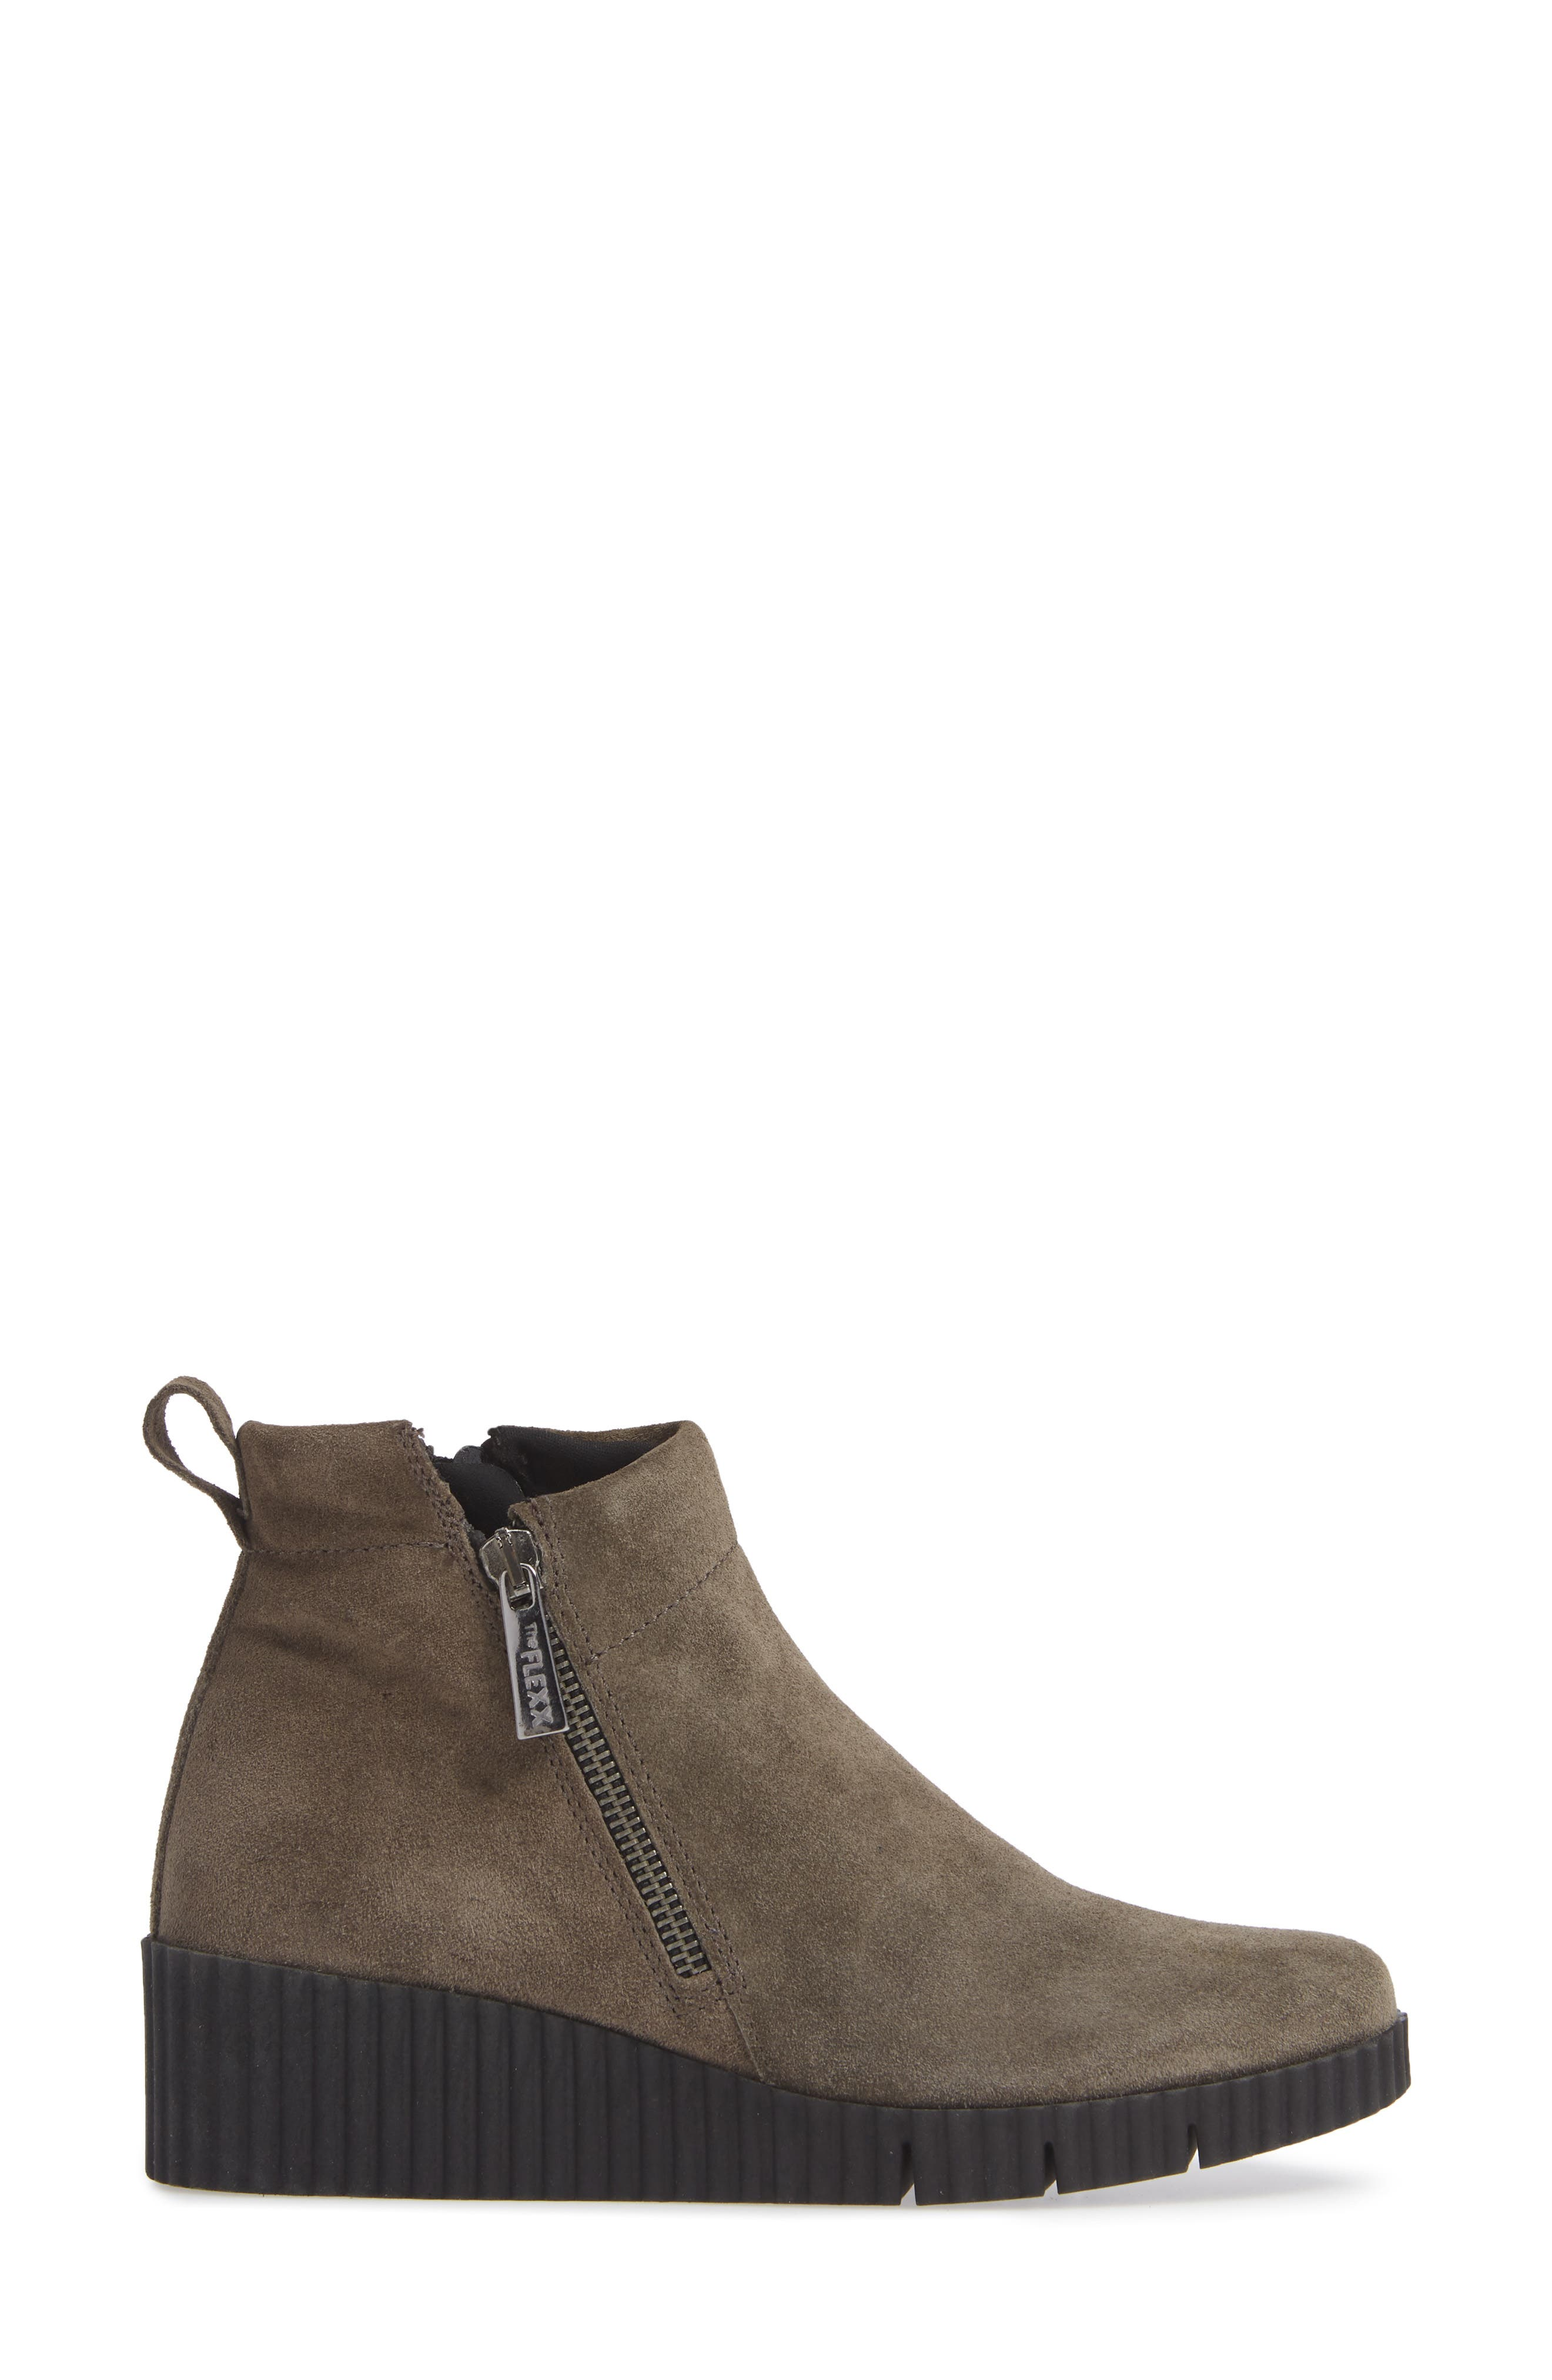 THE FLEXX, Easy Does It Wedge Bootie, Alternate thumbnail 3, color, BROWN SUEDE